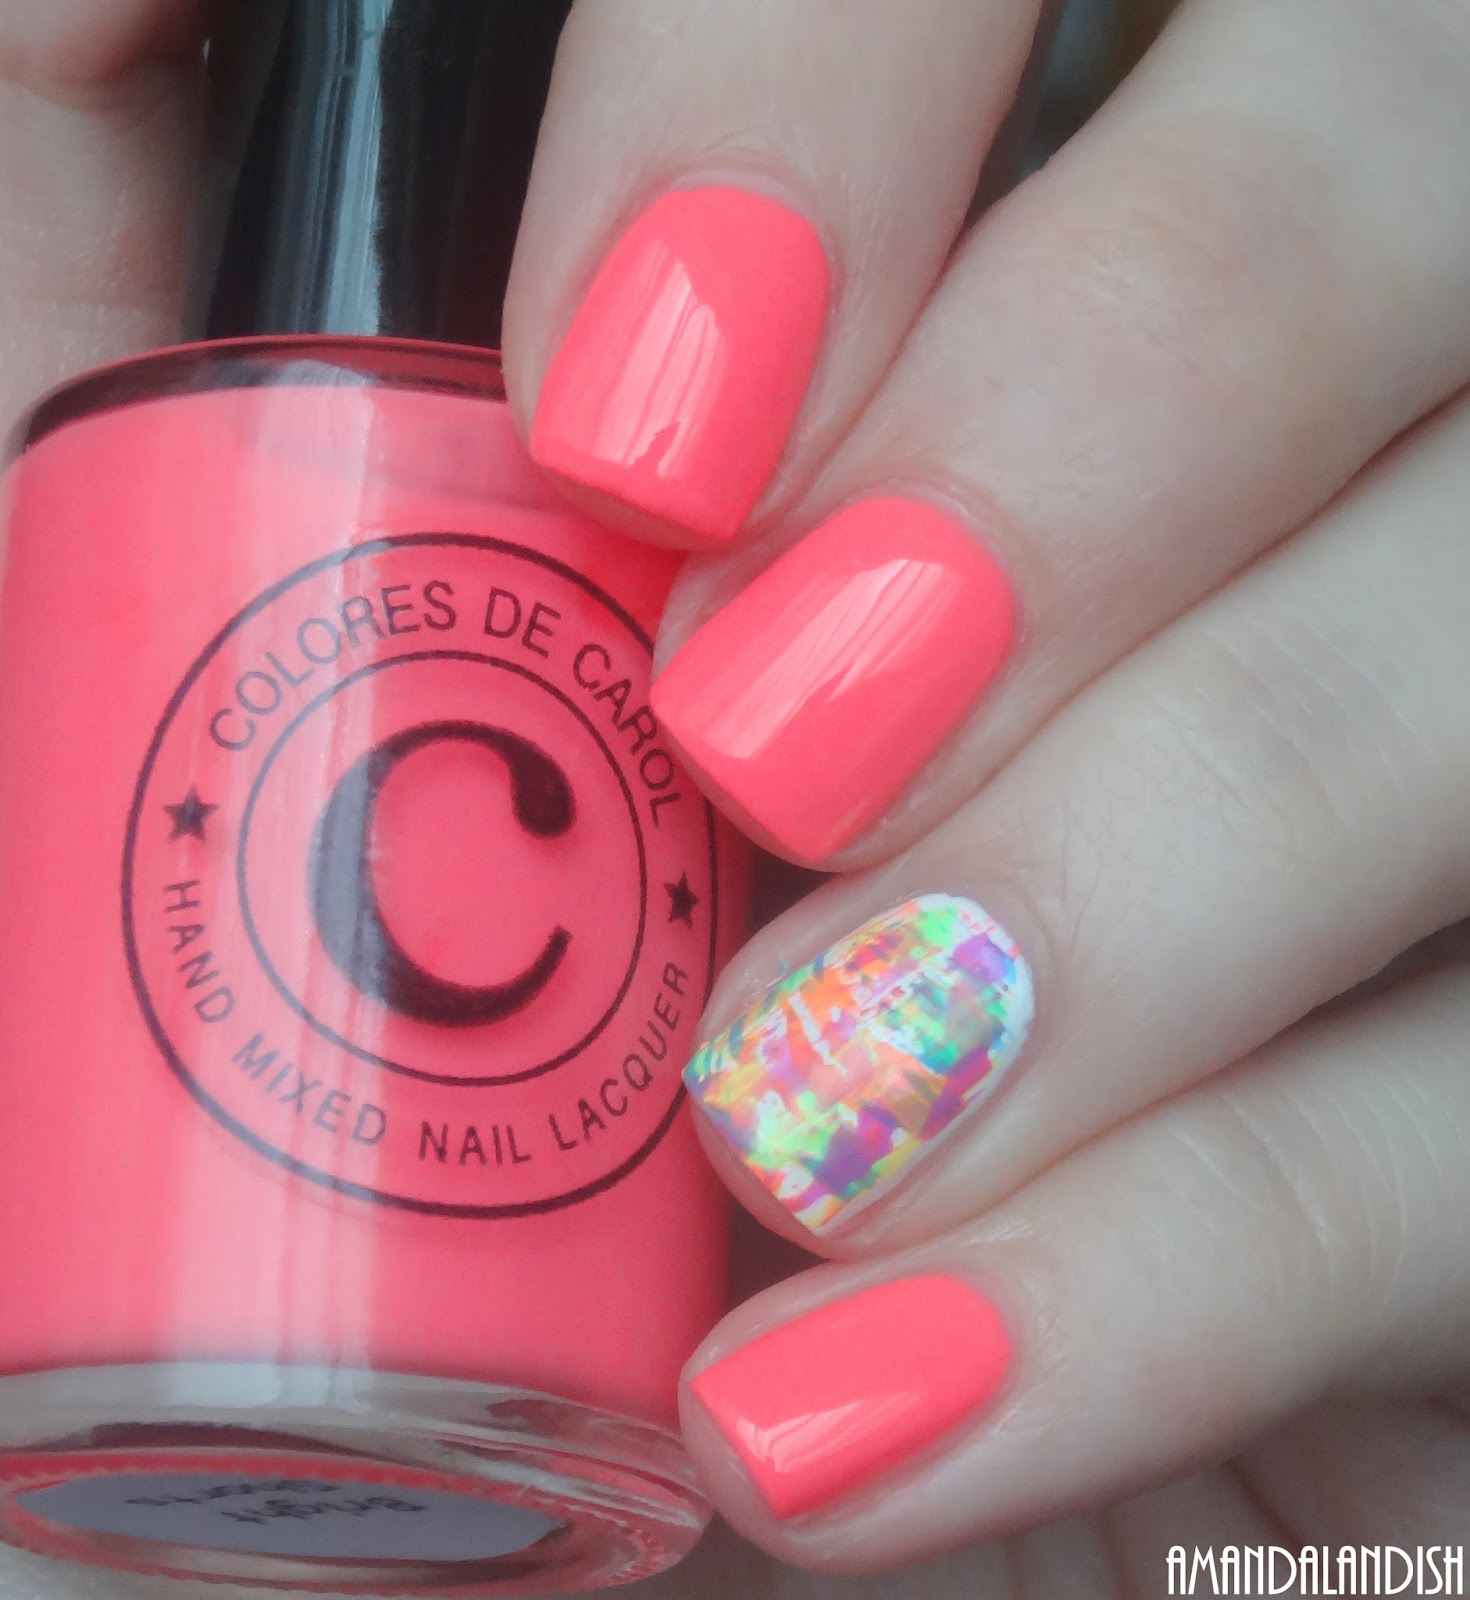 Amandalandish: Colores de Carol Summer Fun Collection | Twinsie ...